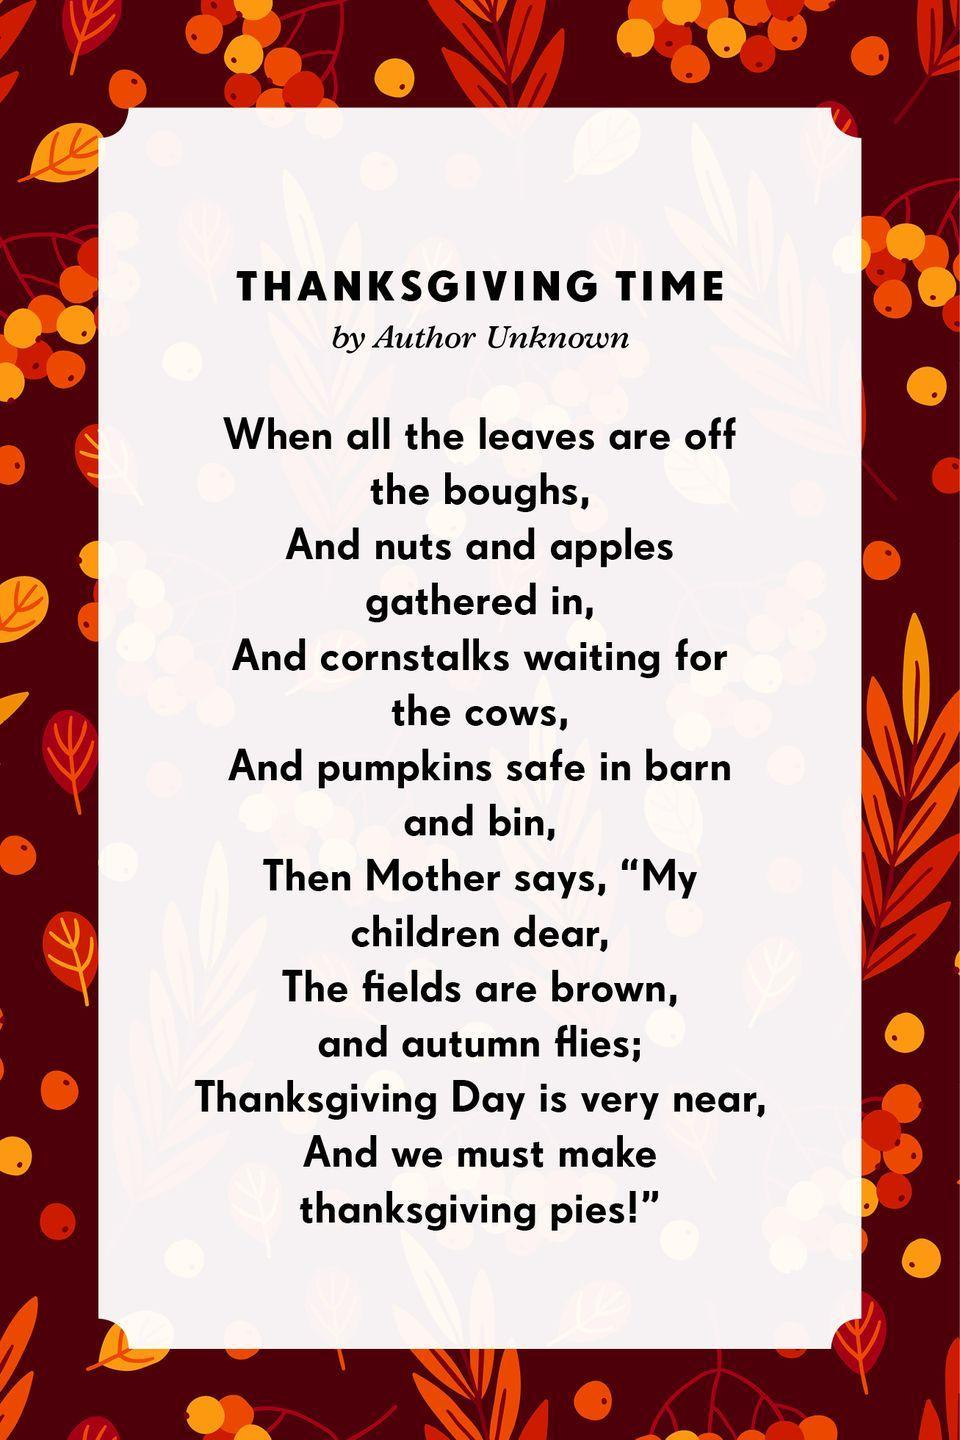 """<p><strong>Thanksgiving Time</strong><br><br>When all the leaves are off the boughs,<br>And nuts and apples gathered in,<br>And cornstalks waiting for the cows,<br>And pumpkins safe in barn and bin,<br>Then Mother says, """"My children dear,<br>The fields are brown, and autumn flies;<br>Thanksgiving Day is very near,<br>And we must make <a href=""""https://www.poemofquotes.com/articles/category/holiday-articles/thanksgiving-articles"""" rel=""""nofollow noopener"""" target=""""_blank"""" data-ylk=""""slk:thanksgiving"""" class=""""link rapid-noclick-resp"""">thanksgiving</a> pies!""""<br></p>"""